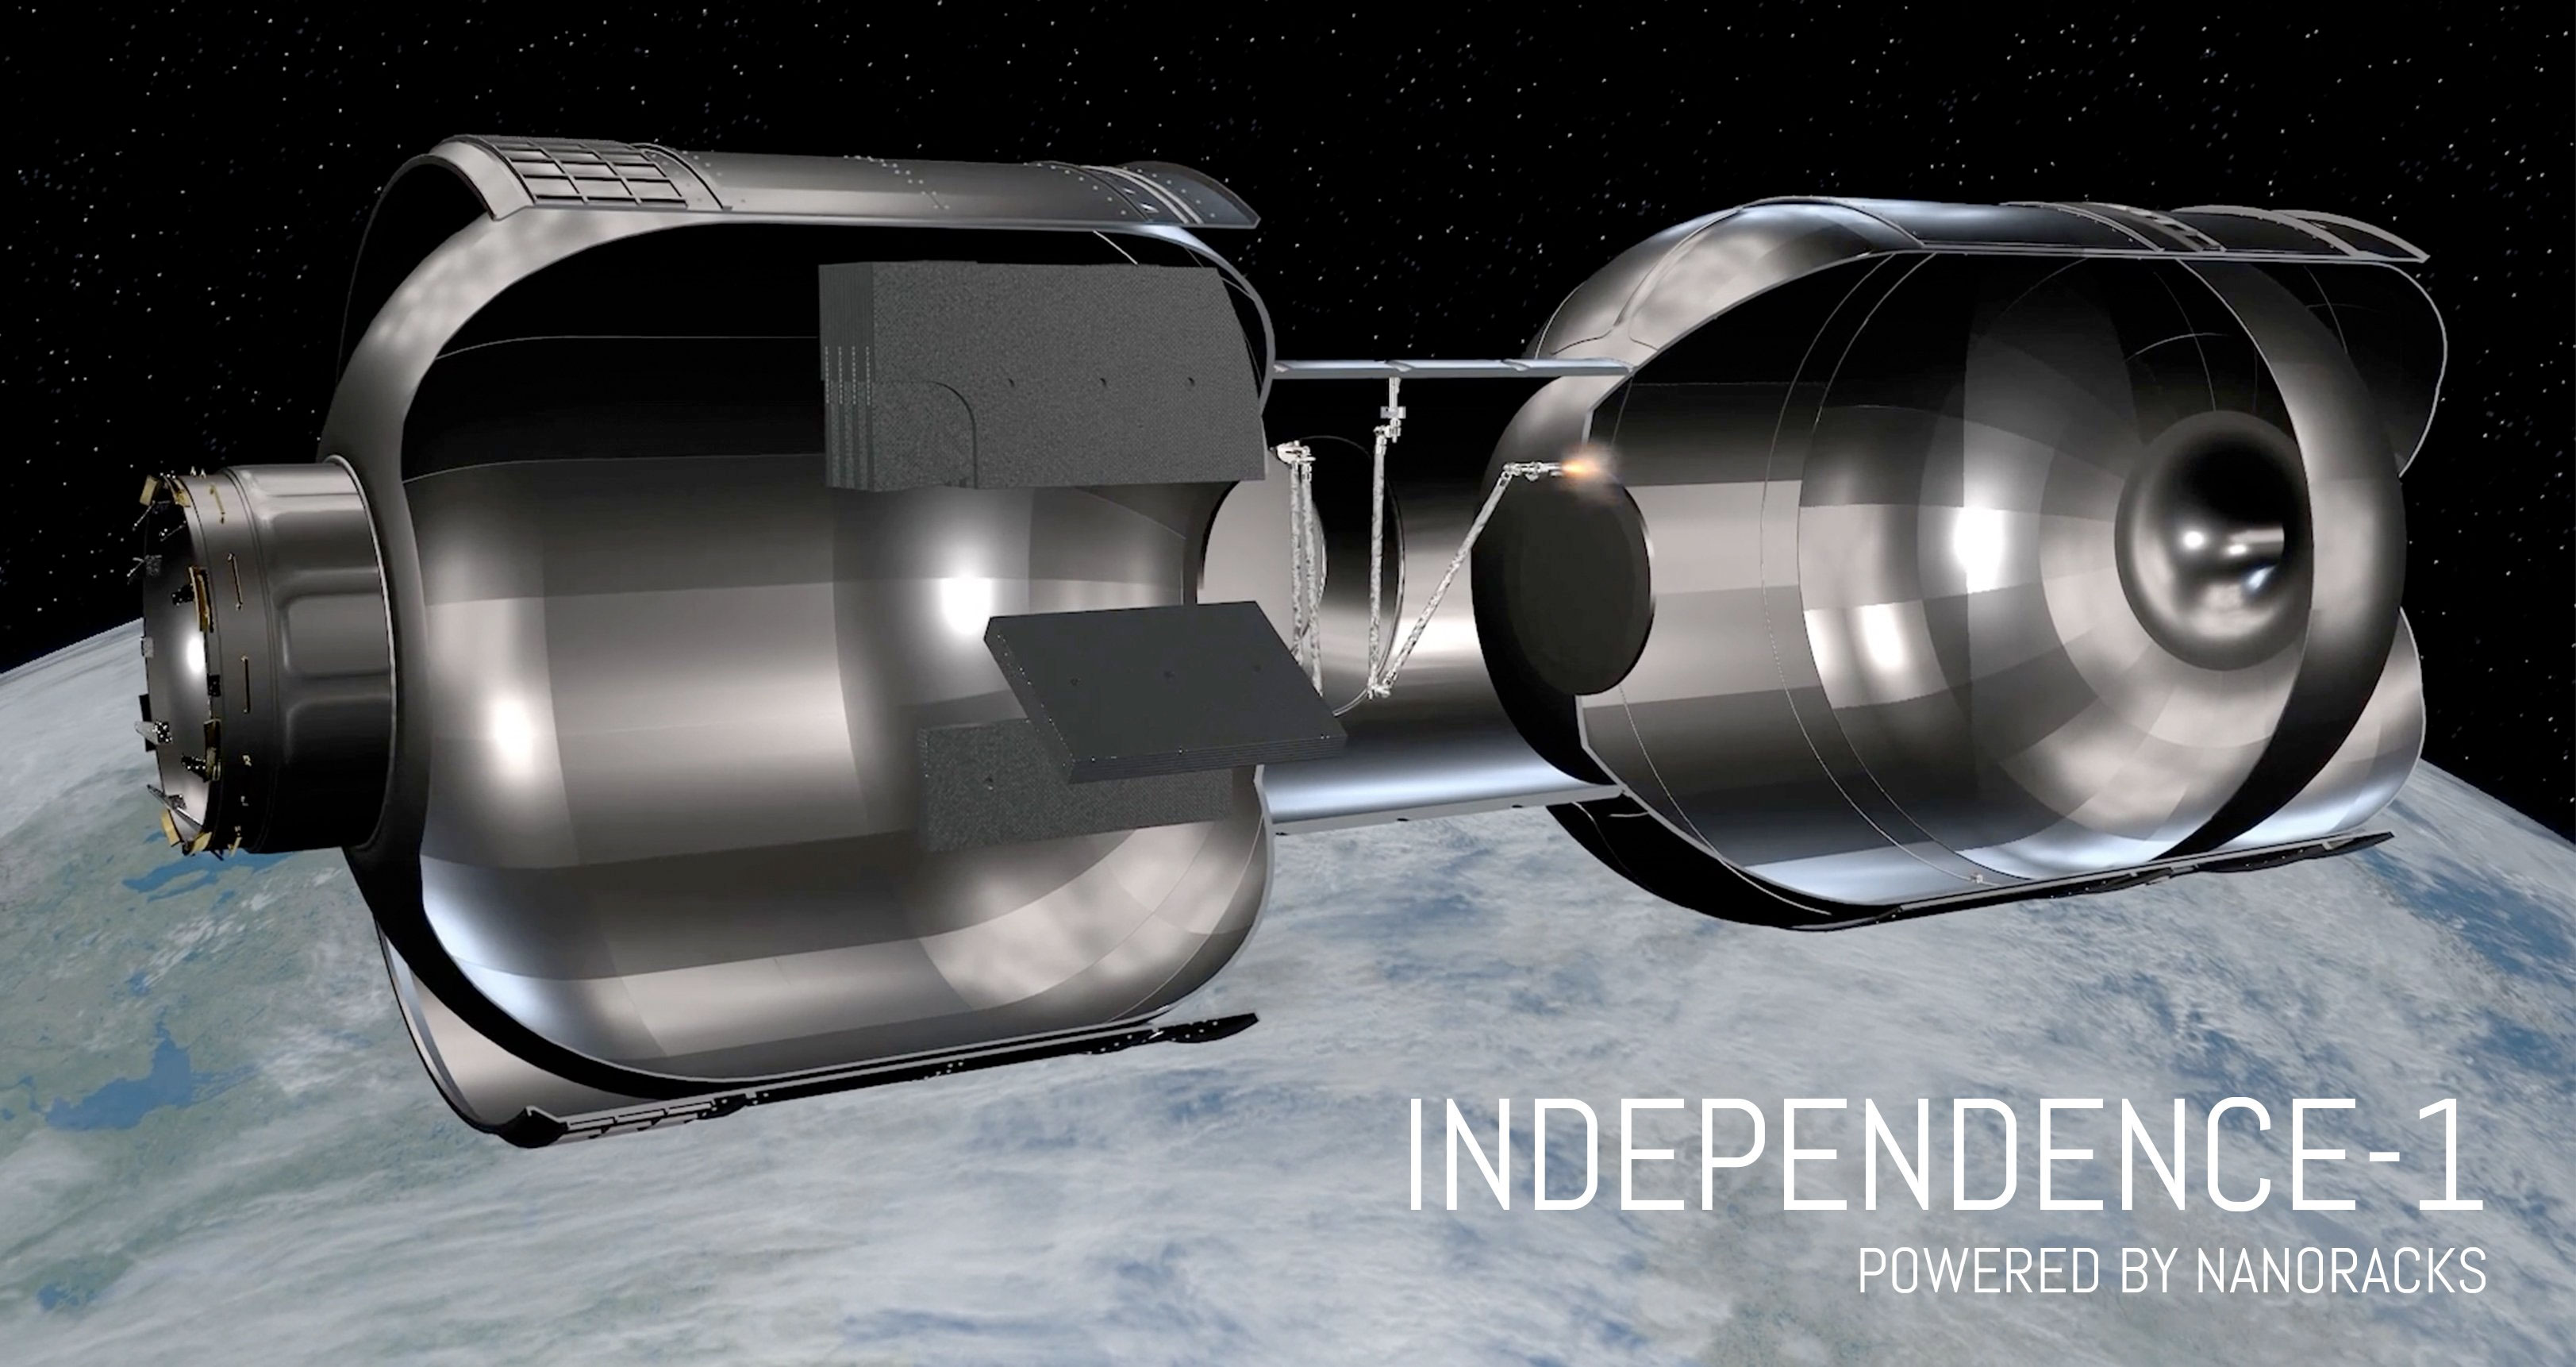 nanoracks_independence1outpost02-lg